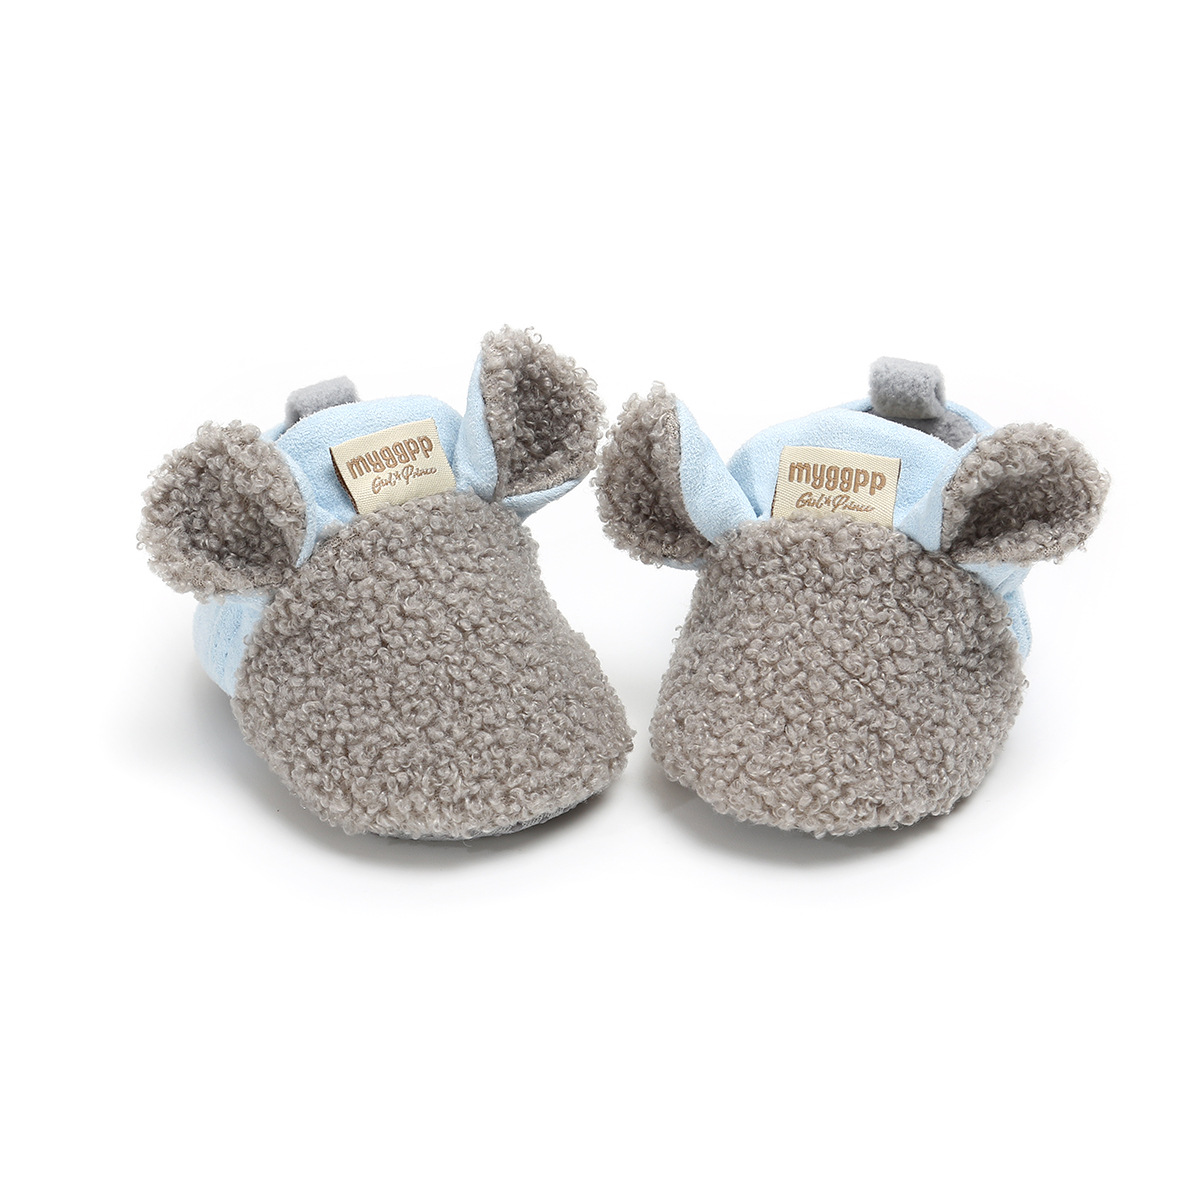 Gray Infant Shoes 2018 Winter Cotton Warm Boys First Walkers Shoes Hot Moccs Soft Soled Non-slip Baby Shoes Crib Shoes.CX54C